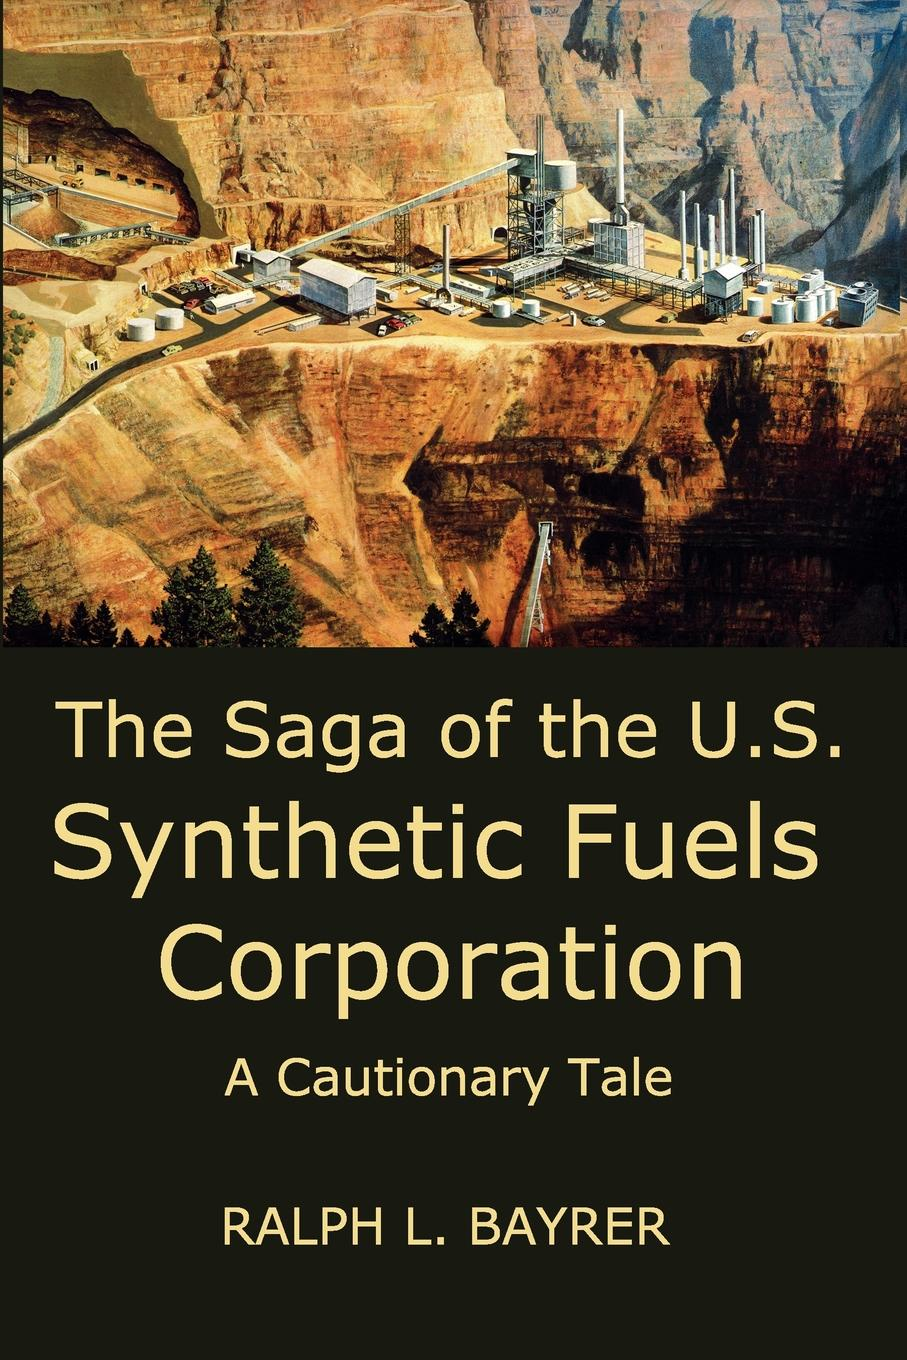 Ralph L. Bayrer The Saga of the U.S. Synthetic Fuels Corporation. A Cautionary Tale jay hakes a declaration of energy independence how freedom from foreign oil can improve national security our economy and the environment